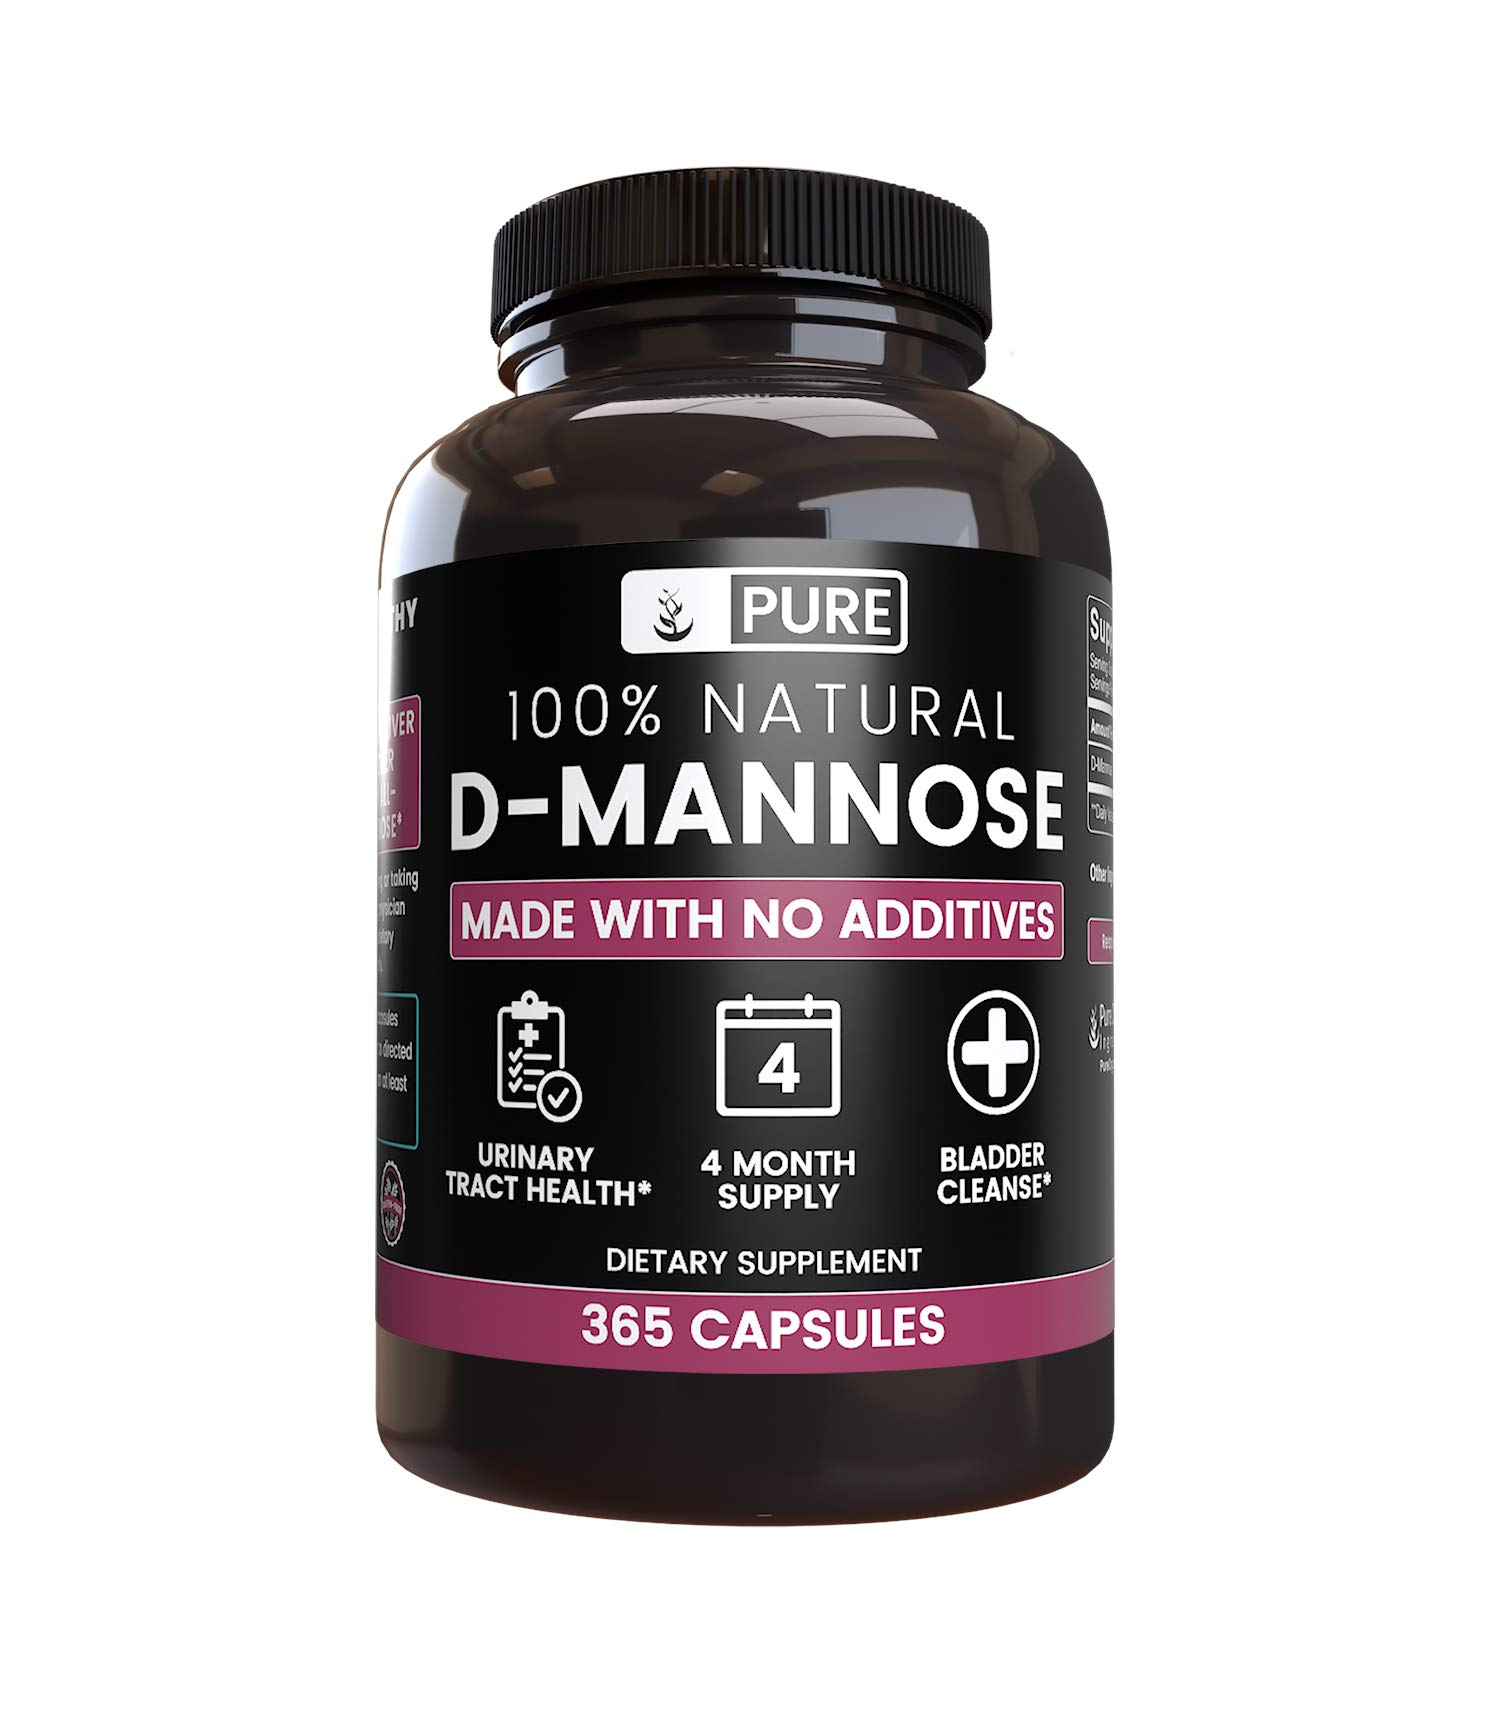 All-Natural D-Mannose |365 Capsules |1500mg |No Magnesium or Rice Filler, Vegetarian, 4-Month Supply, Made in USA, Non-GMO, Potent, Undiluted D-Mannose with No Additives by Pure Organic Ingredients